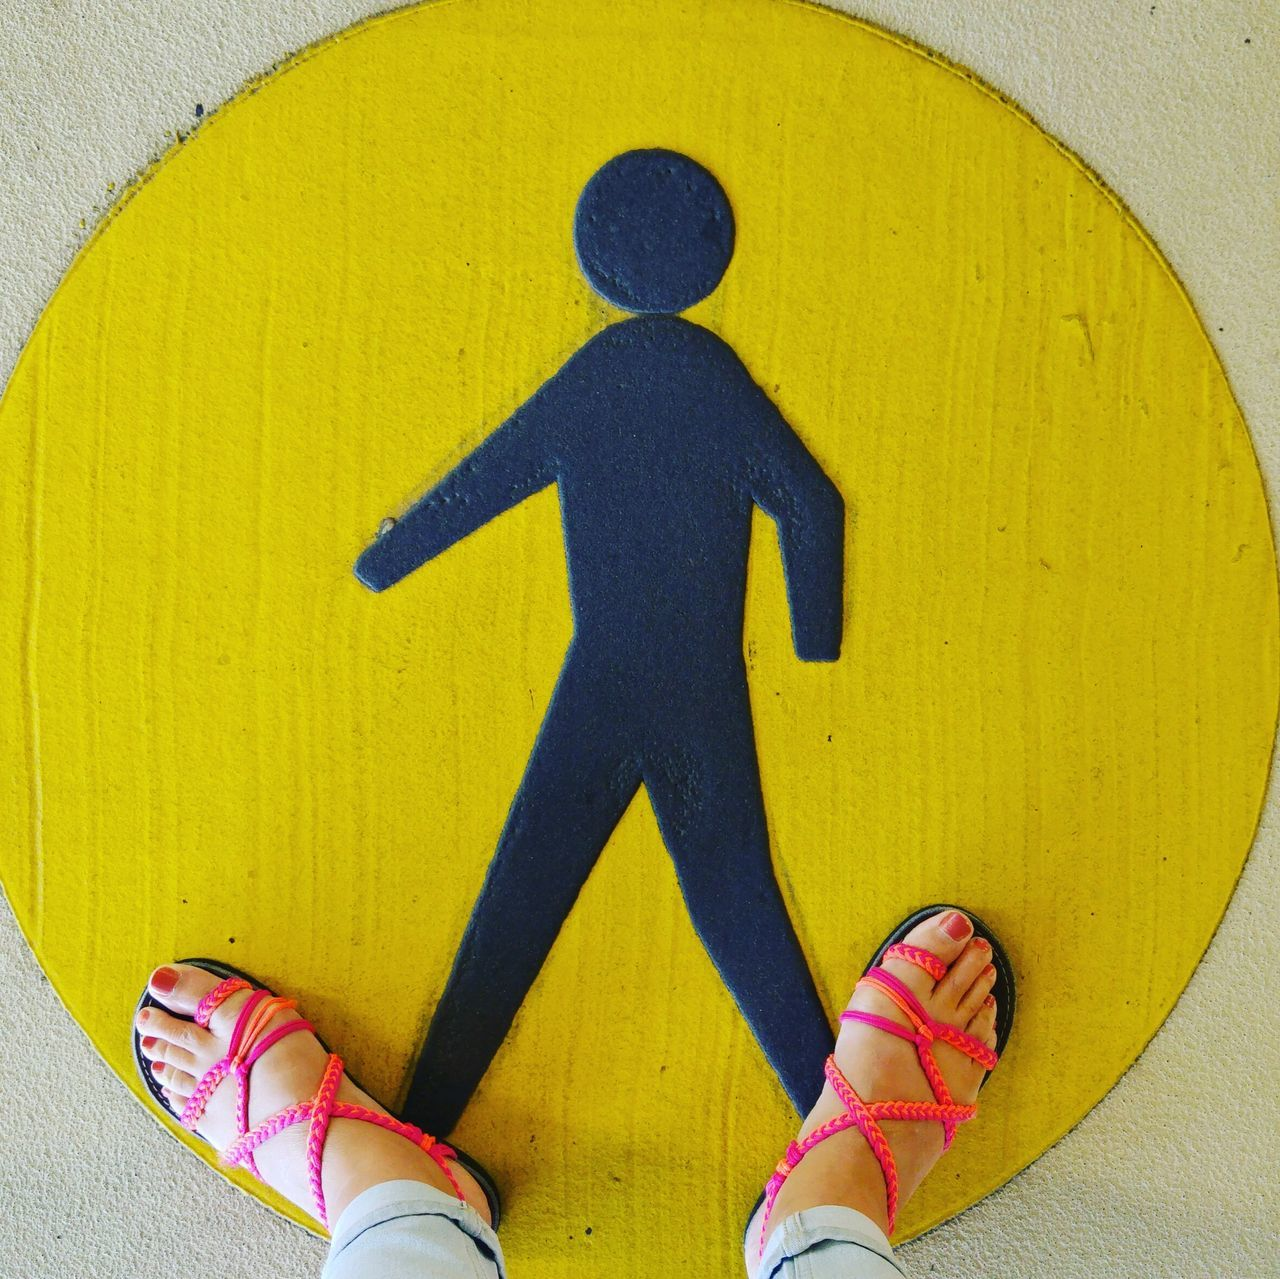 Hanging Out Walking Walkway Walk This Way Feet Feetselfie Little Man   Yellow Yellow Circle Pictogram Picto Pictogram Walkway Walk This Way A Bird's Eye View People And Places